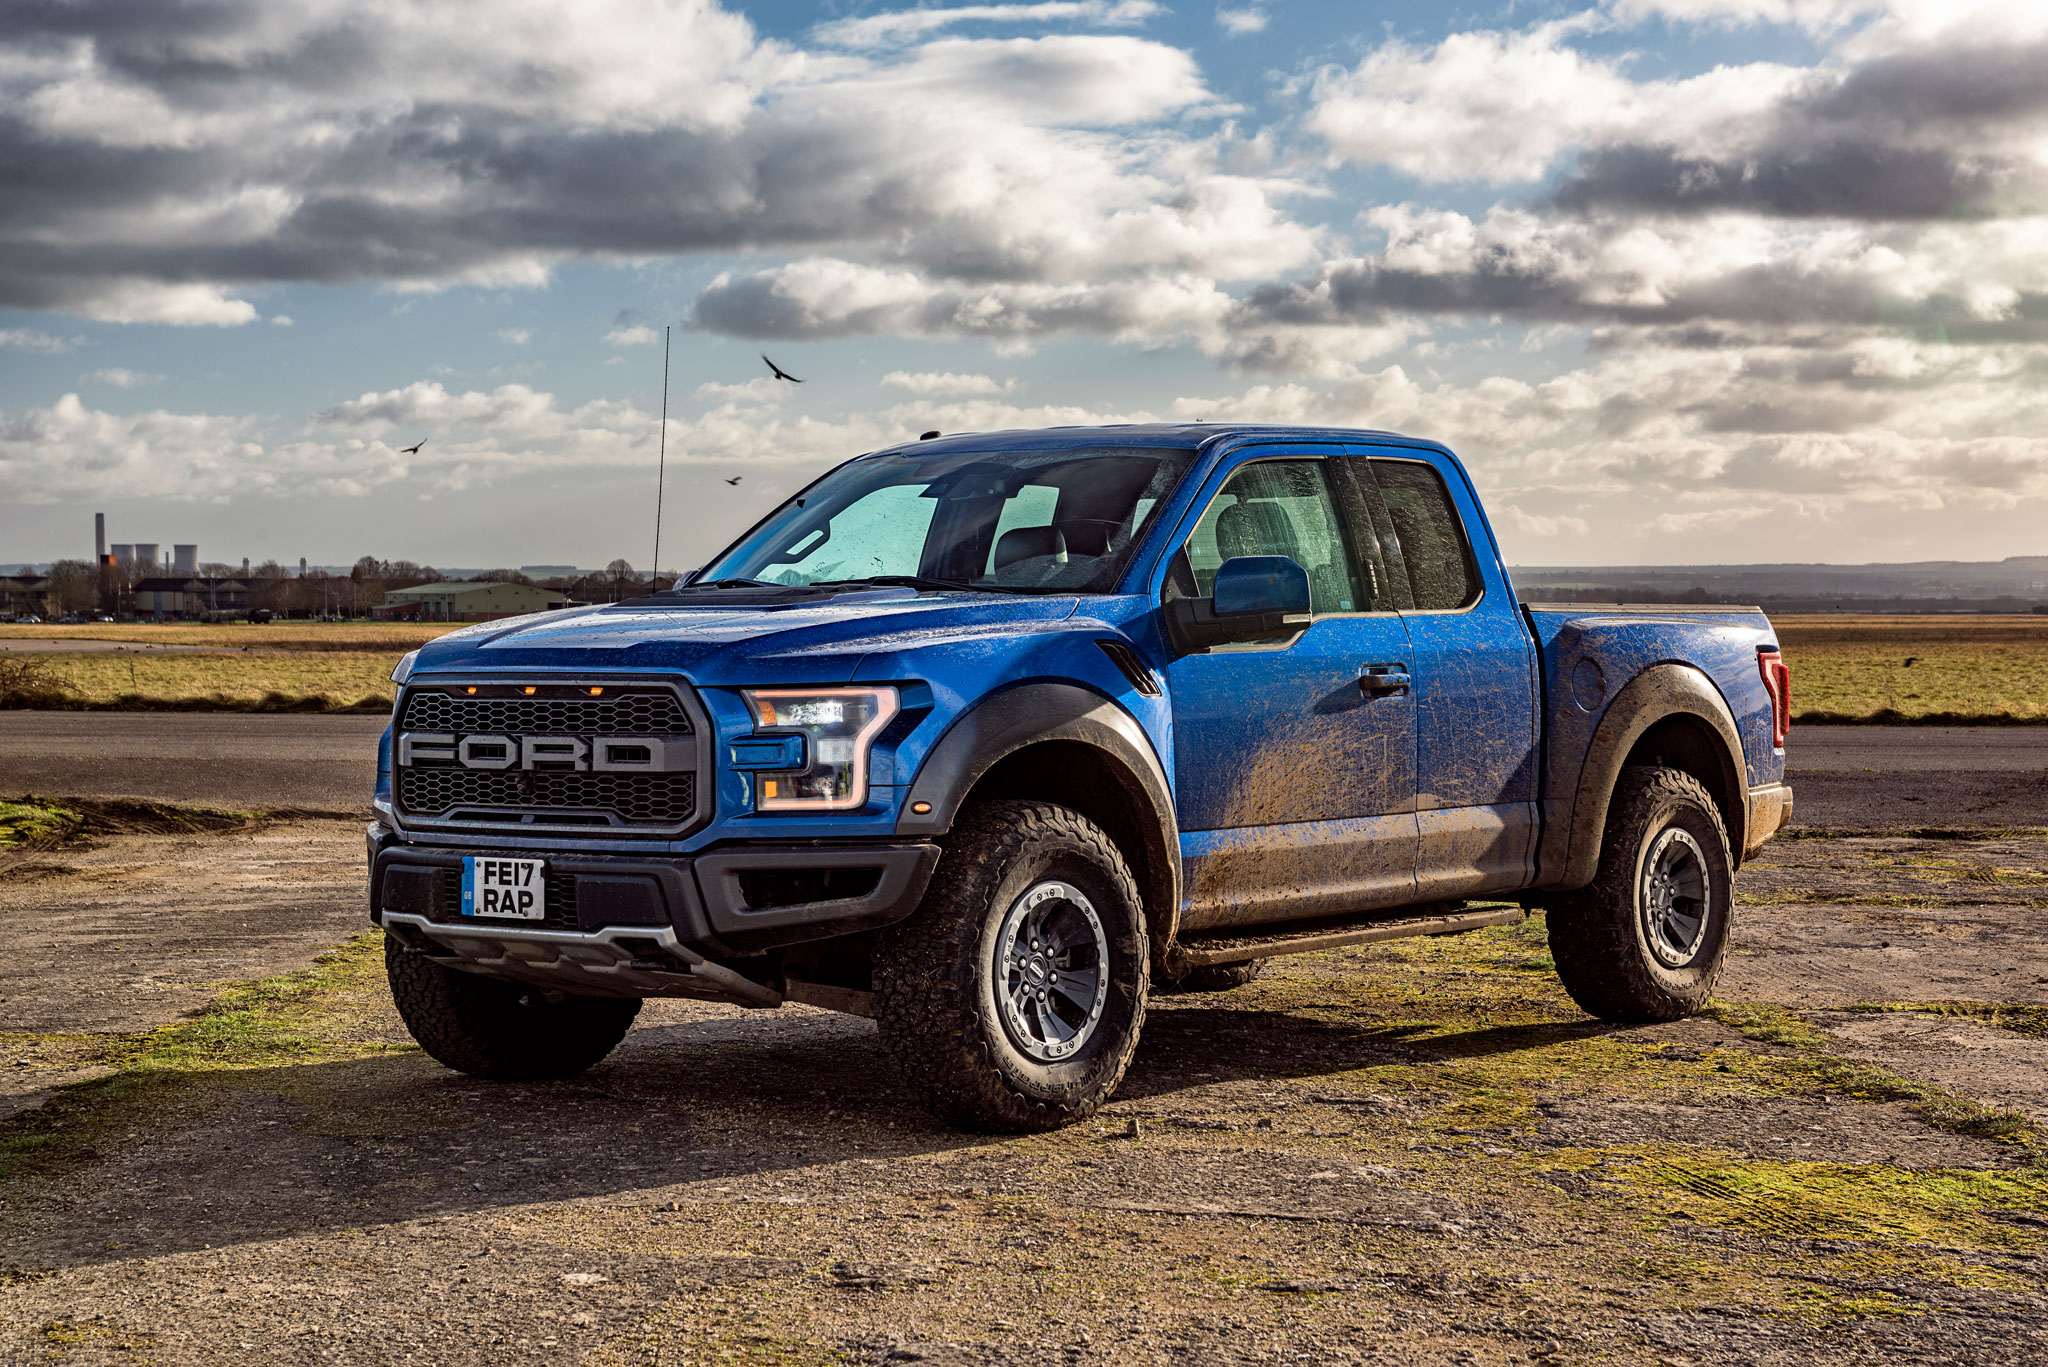 Ford Raptor photography by Dean Wright Automotive